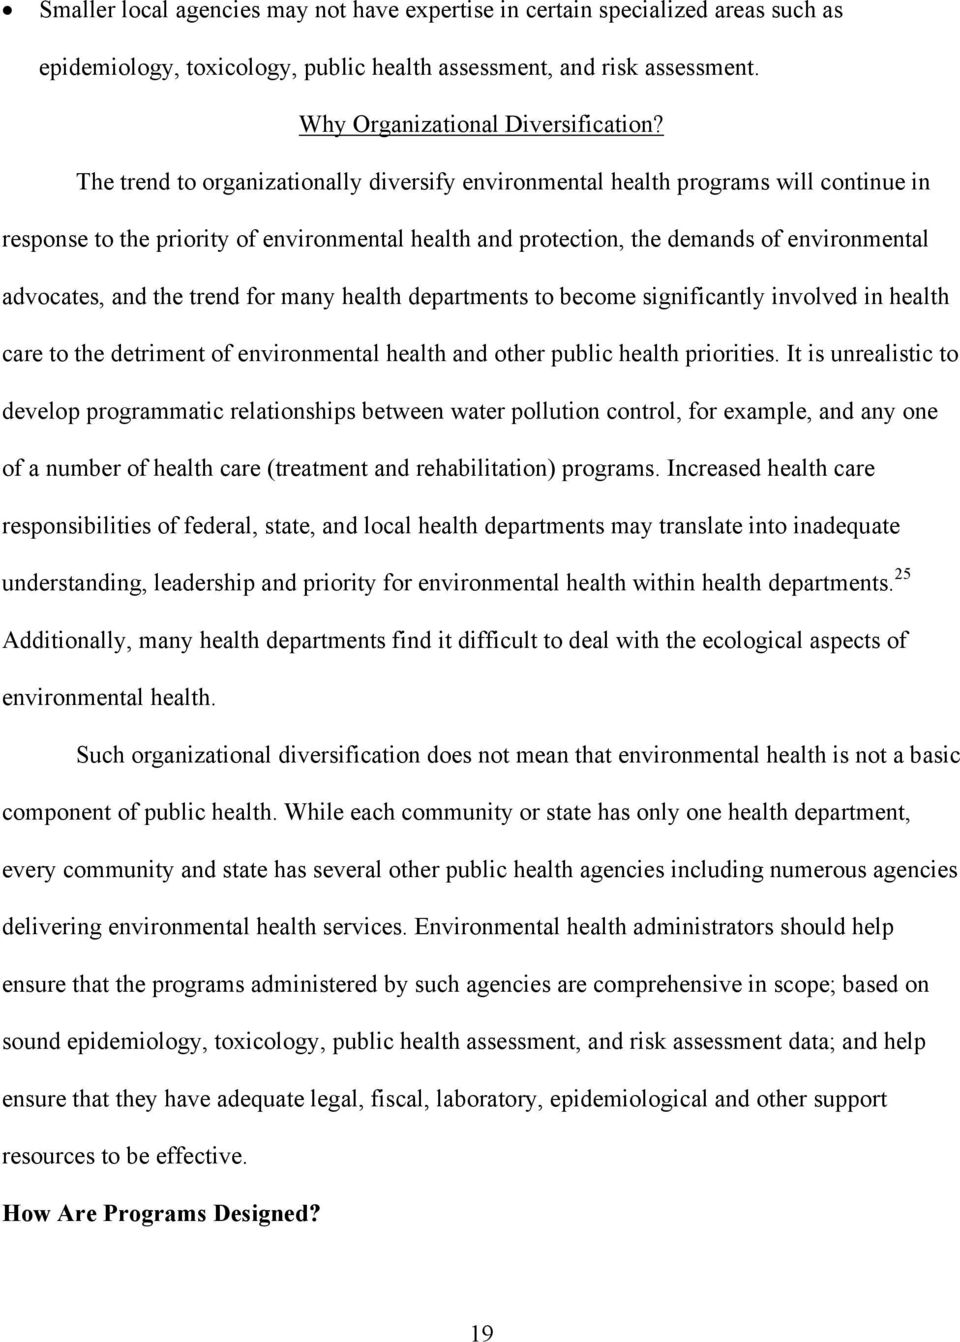 trend for many health departments to become significantly involved in health care to the detriment of environmental health and other public health priorities.